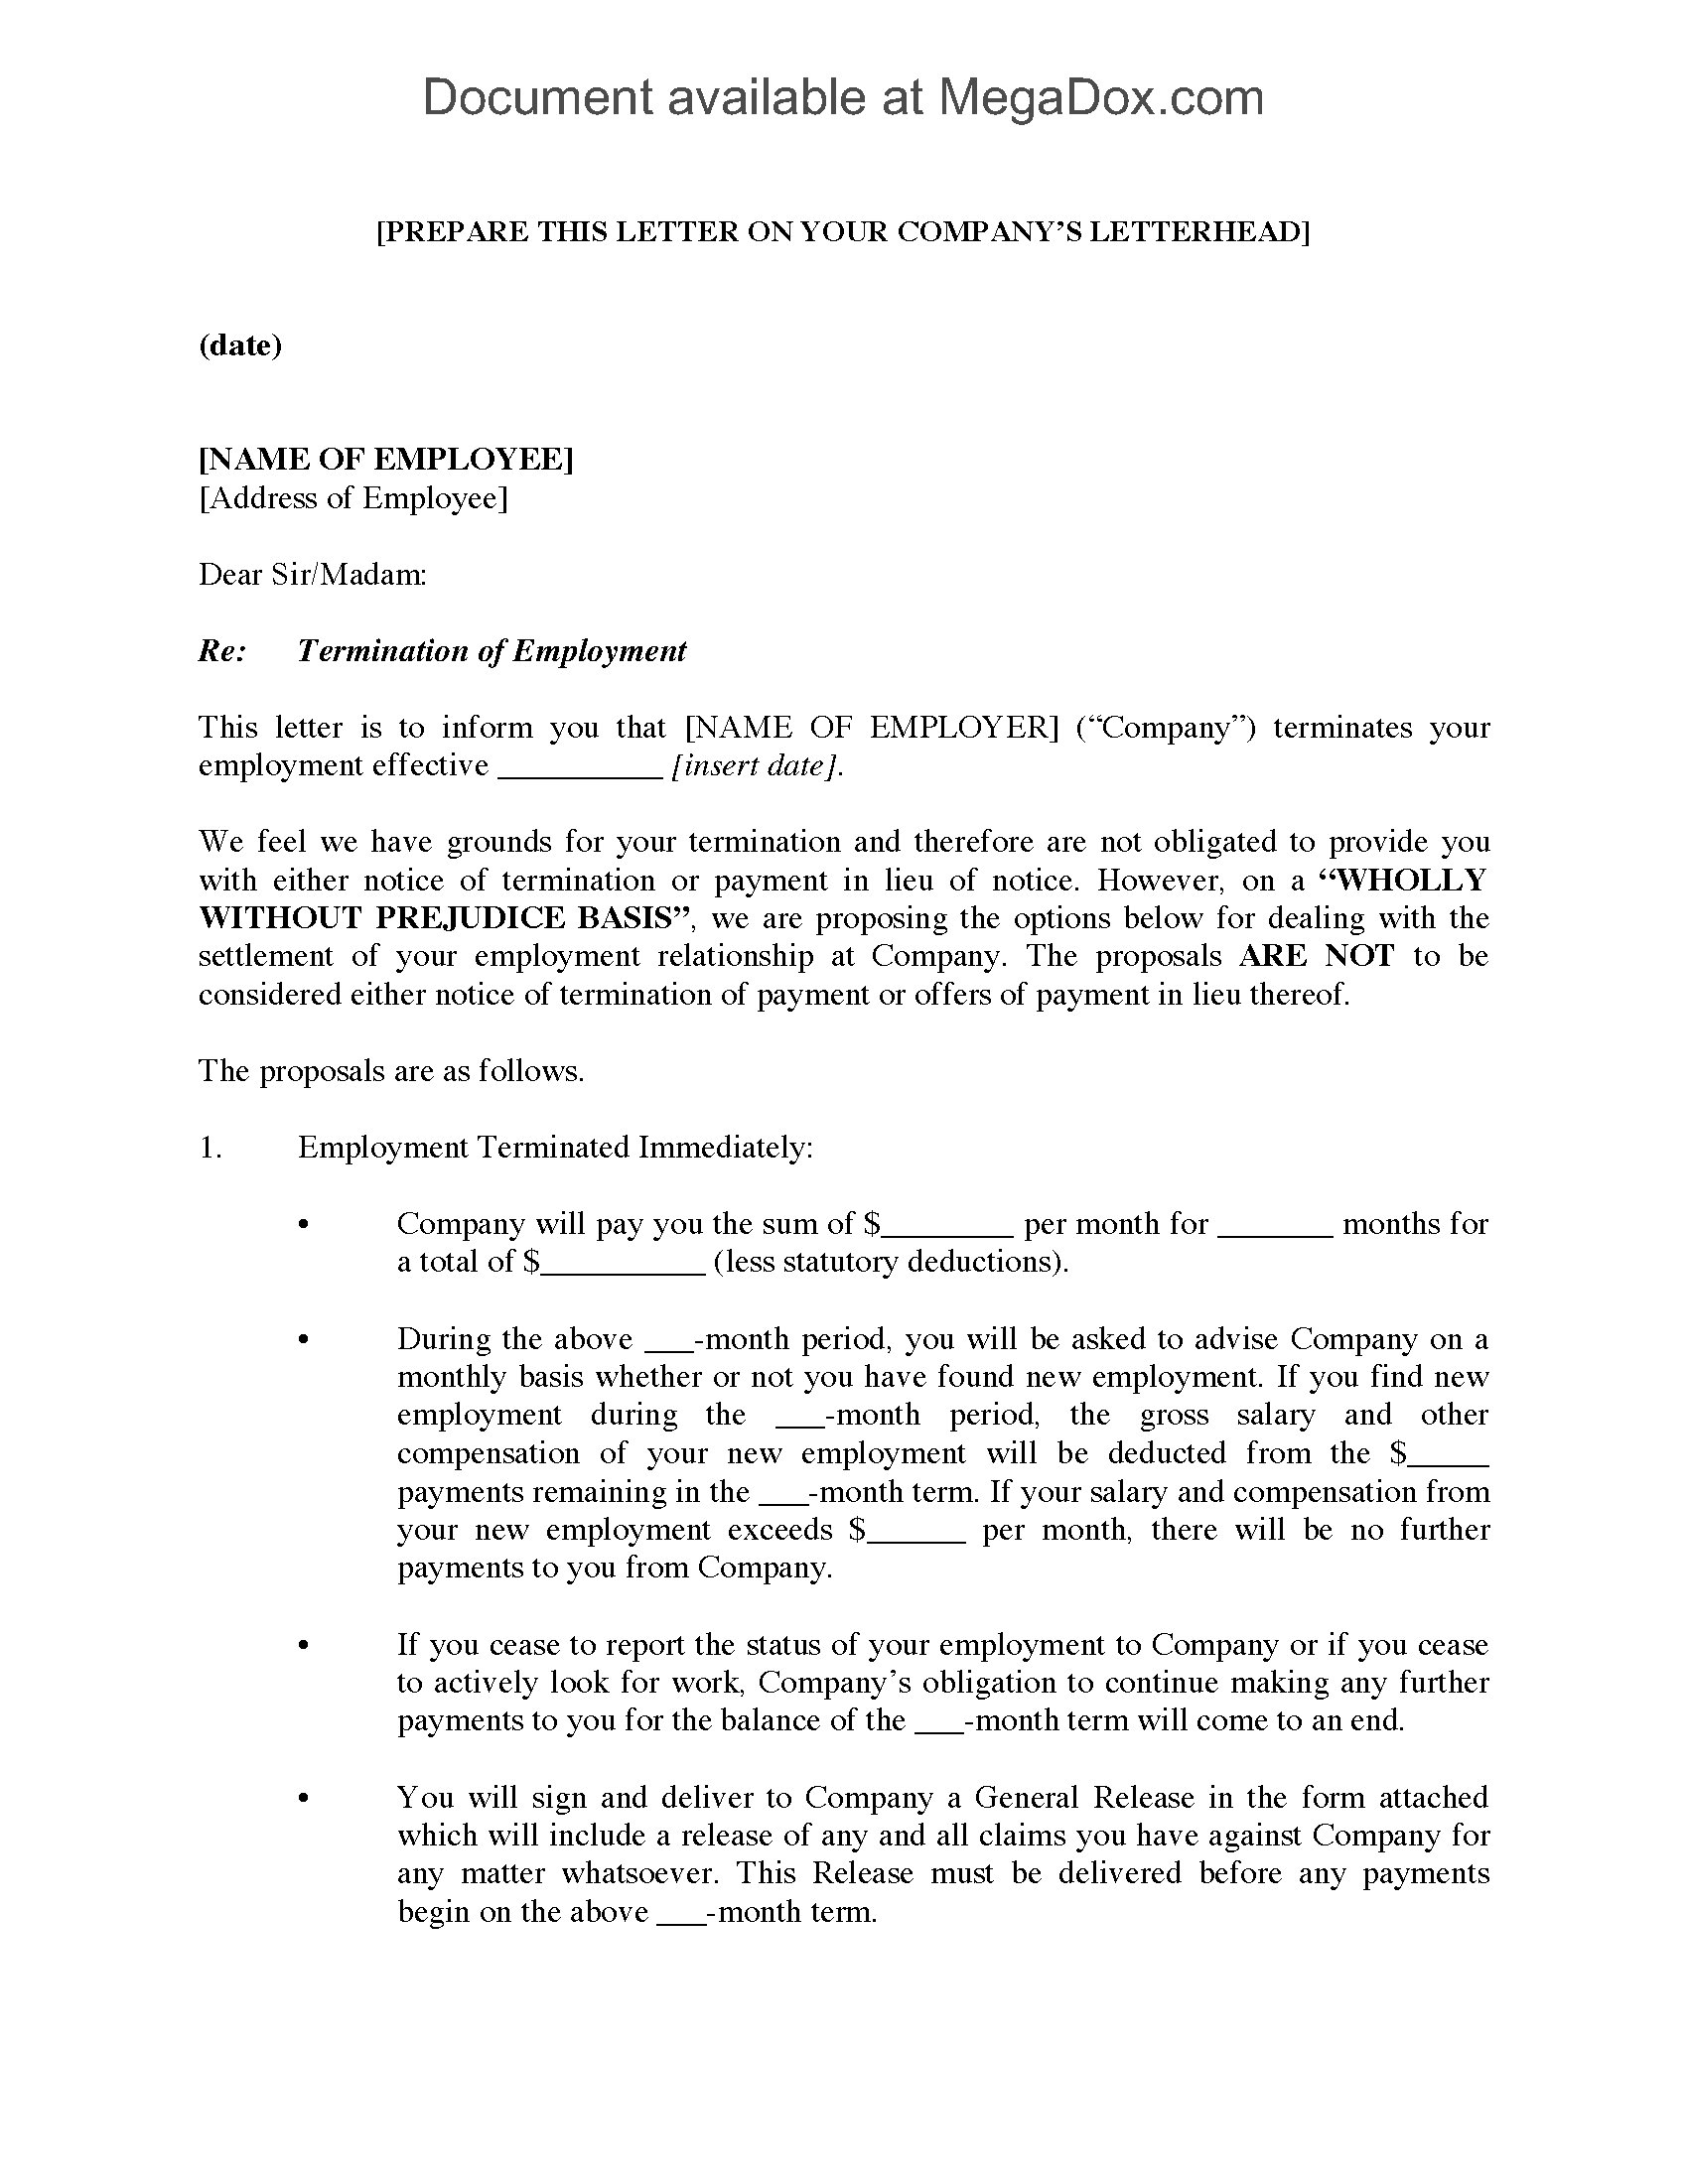 Employment Termination Letter with Settlement Proposal | Legal ...